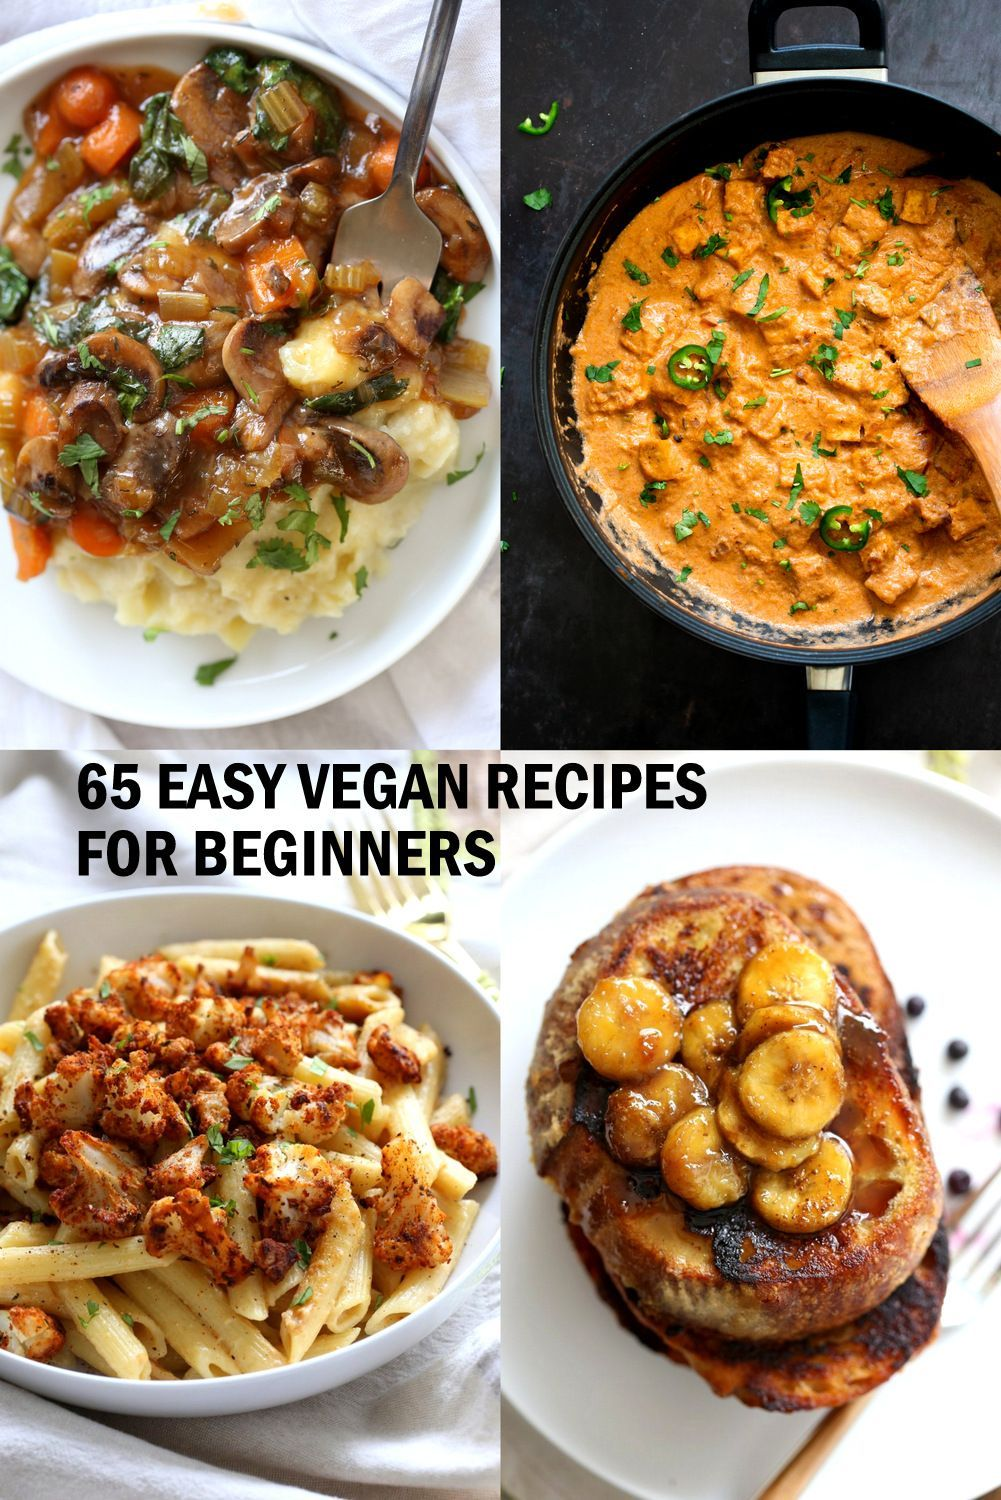 65 Easy Vegan Recipes for Beginners – Vegan Richa